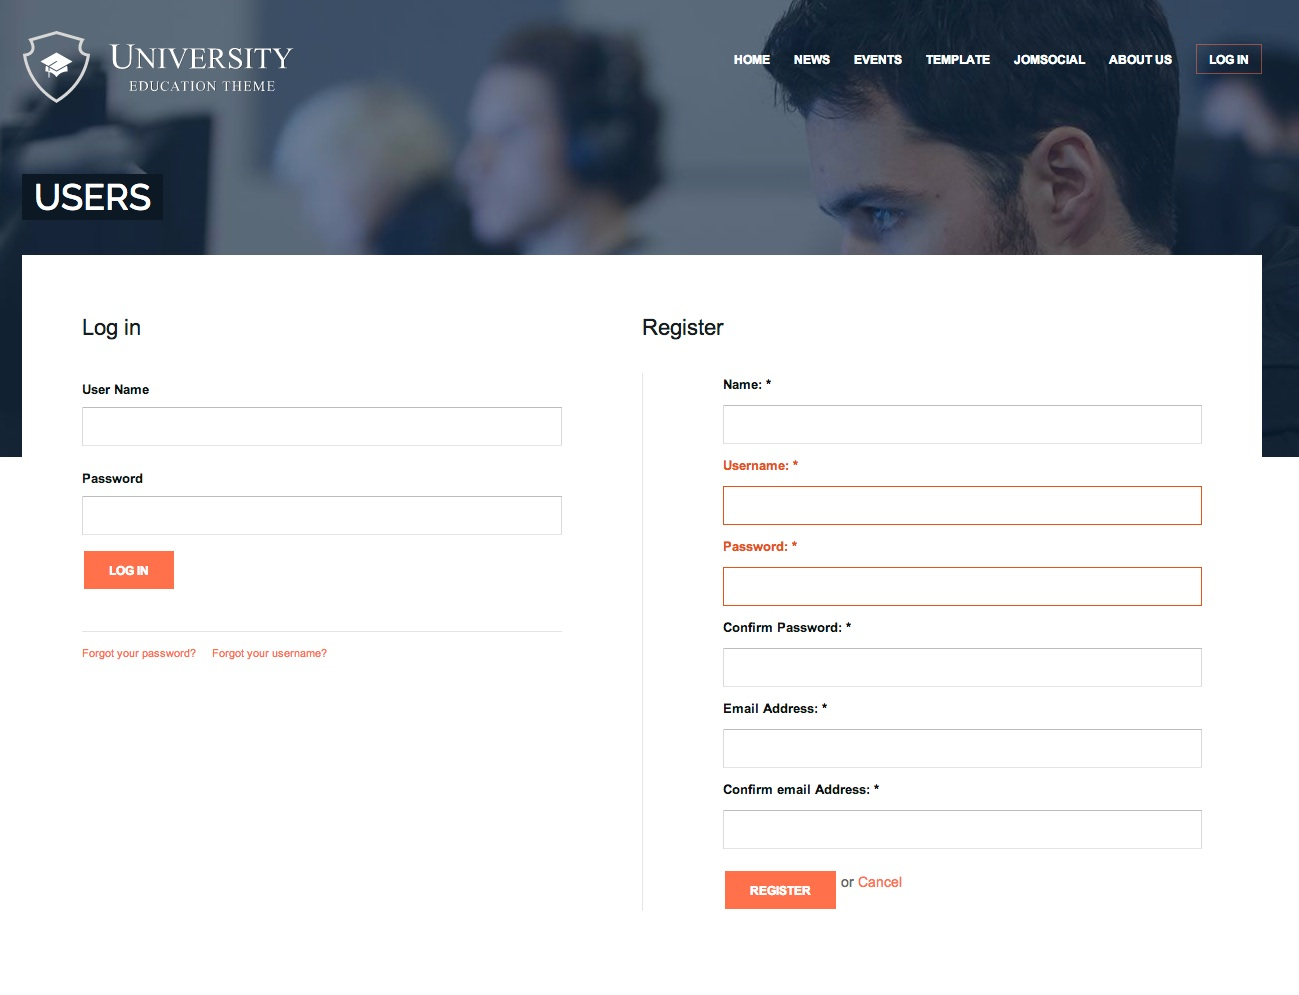 Login or register page